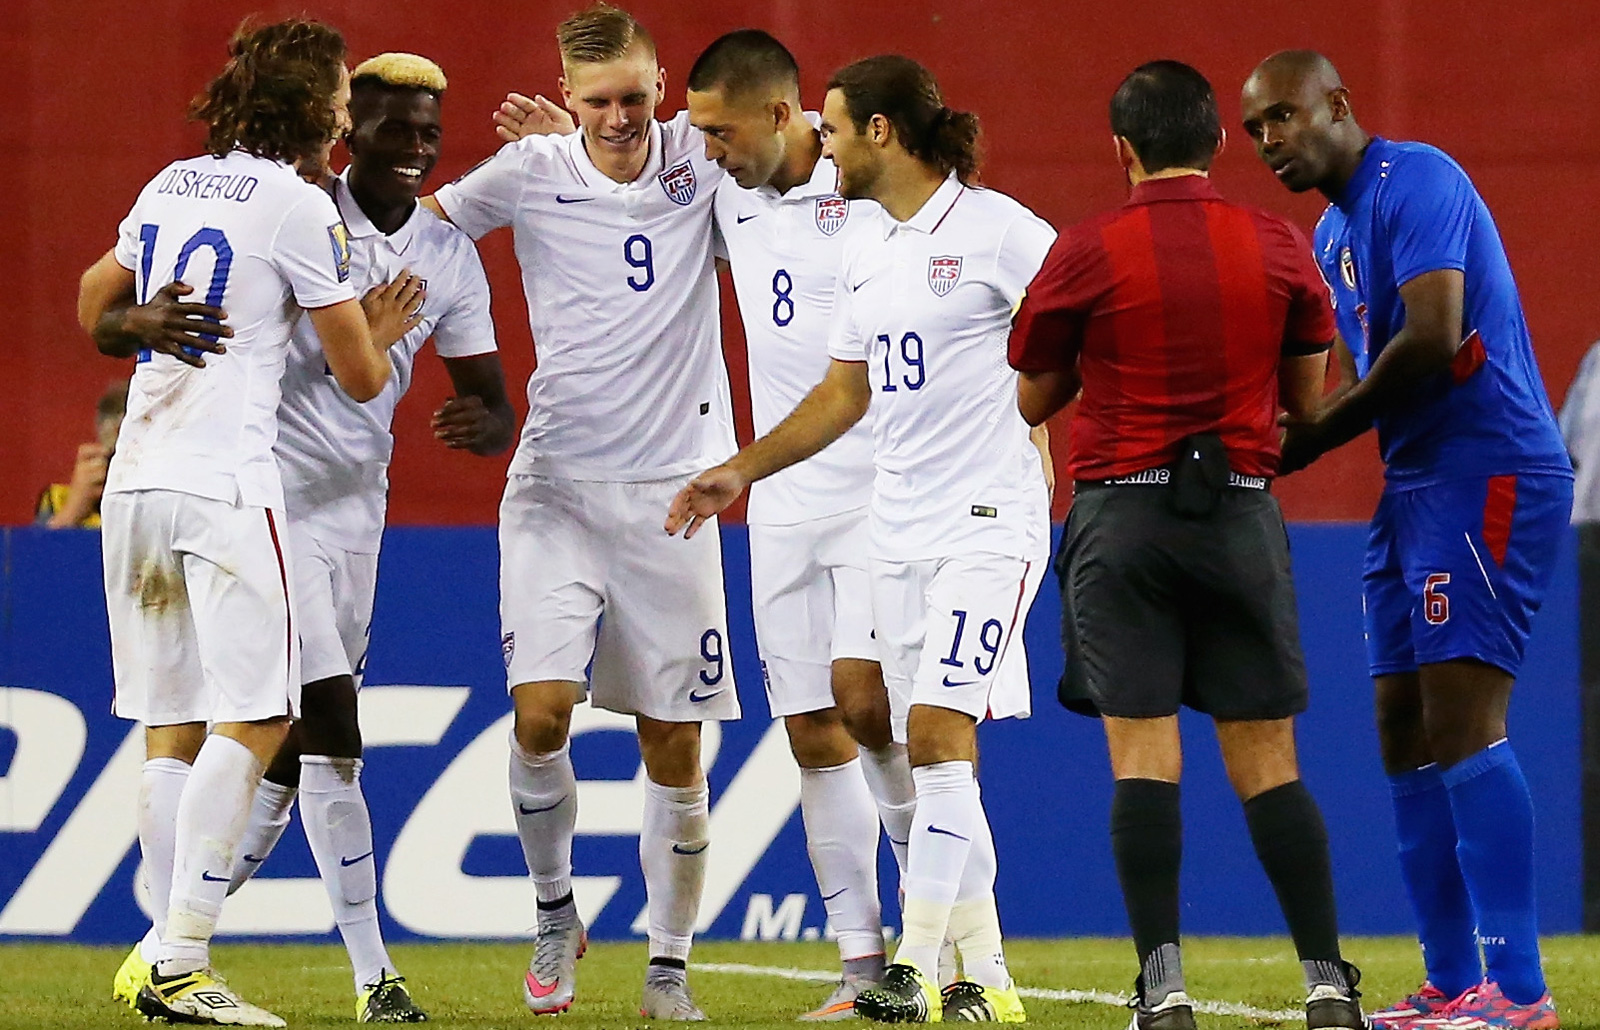 Clint Dempsey (8) is congratulated by his teammates after a 47th-minute goal gave the USA a 1-0 win over Haiti in the Gold Cup. Gyasi Zardes, second from left, came on at halftime and assisted, and the win clinched first place in Group A.